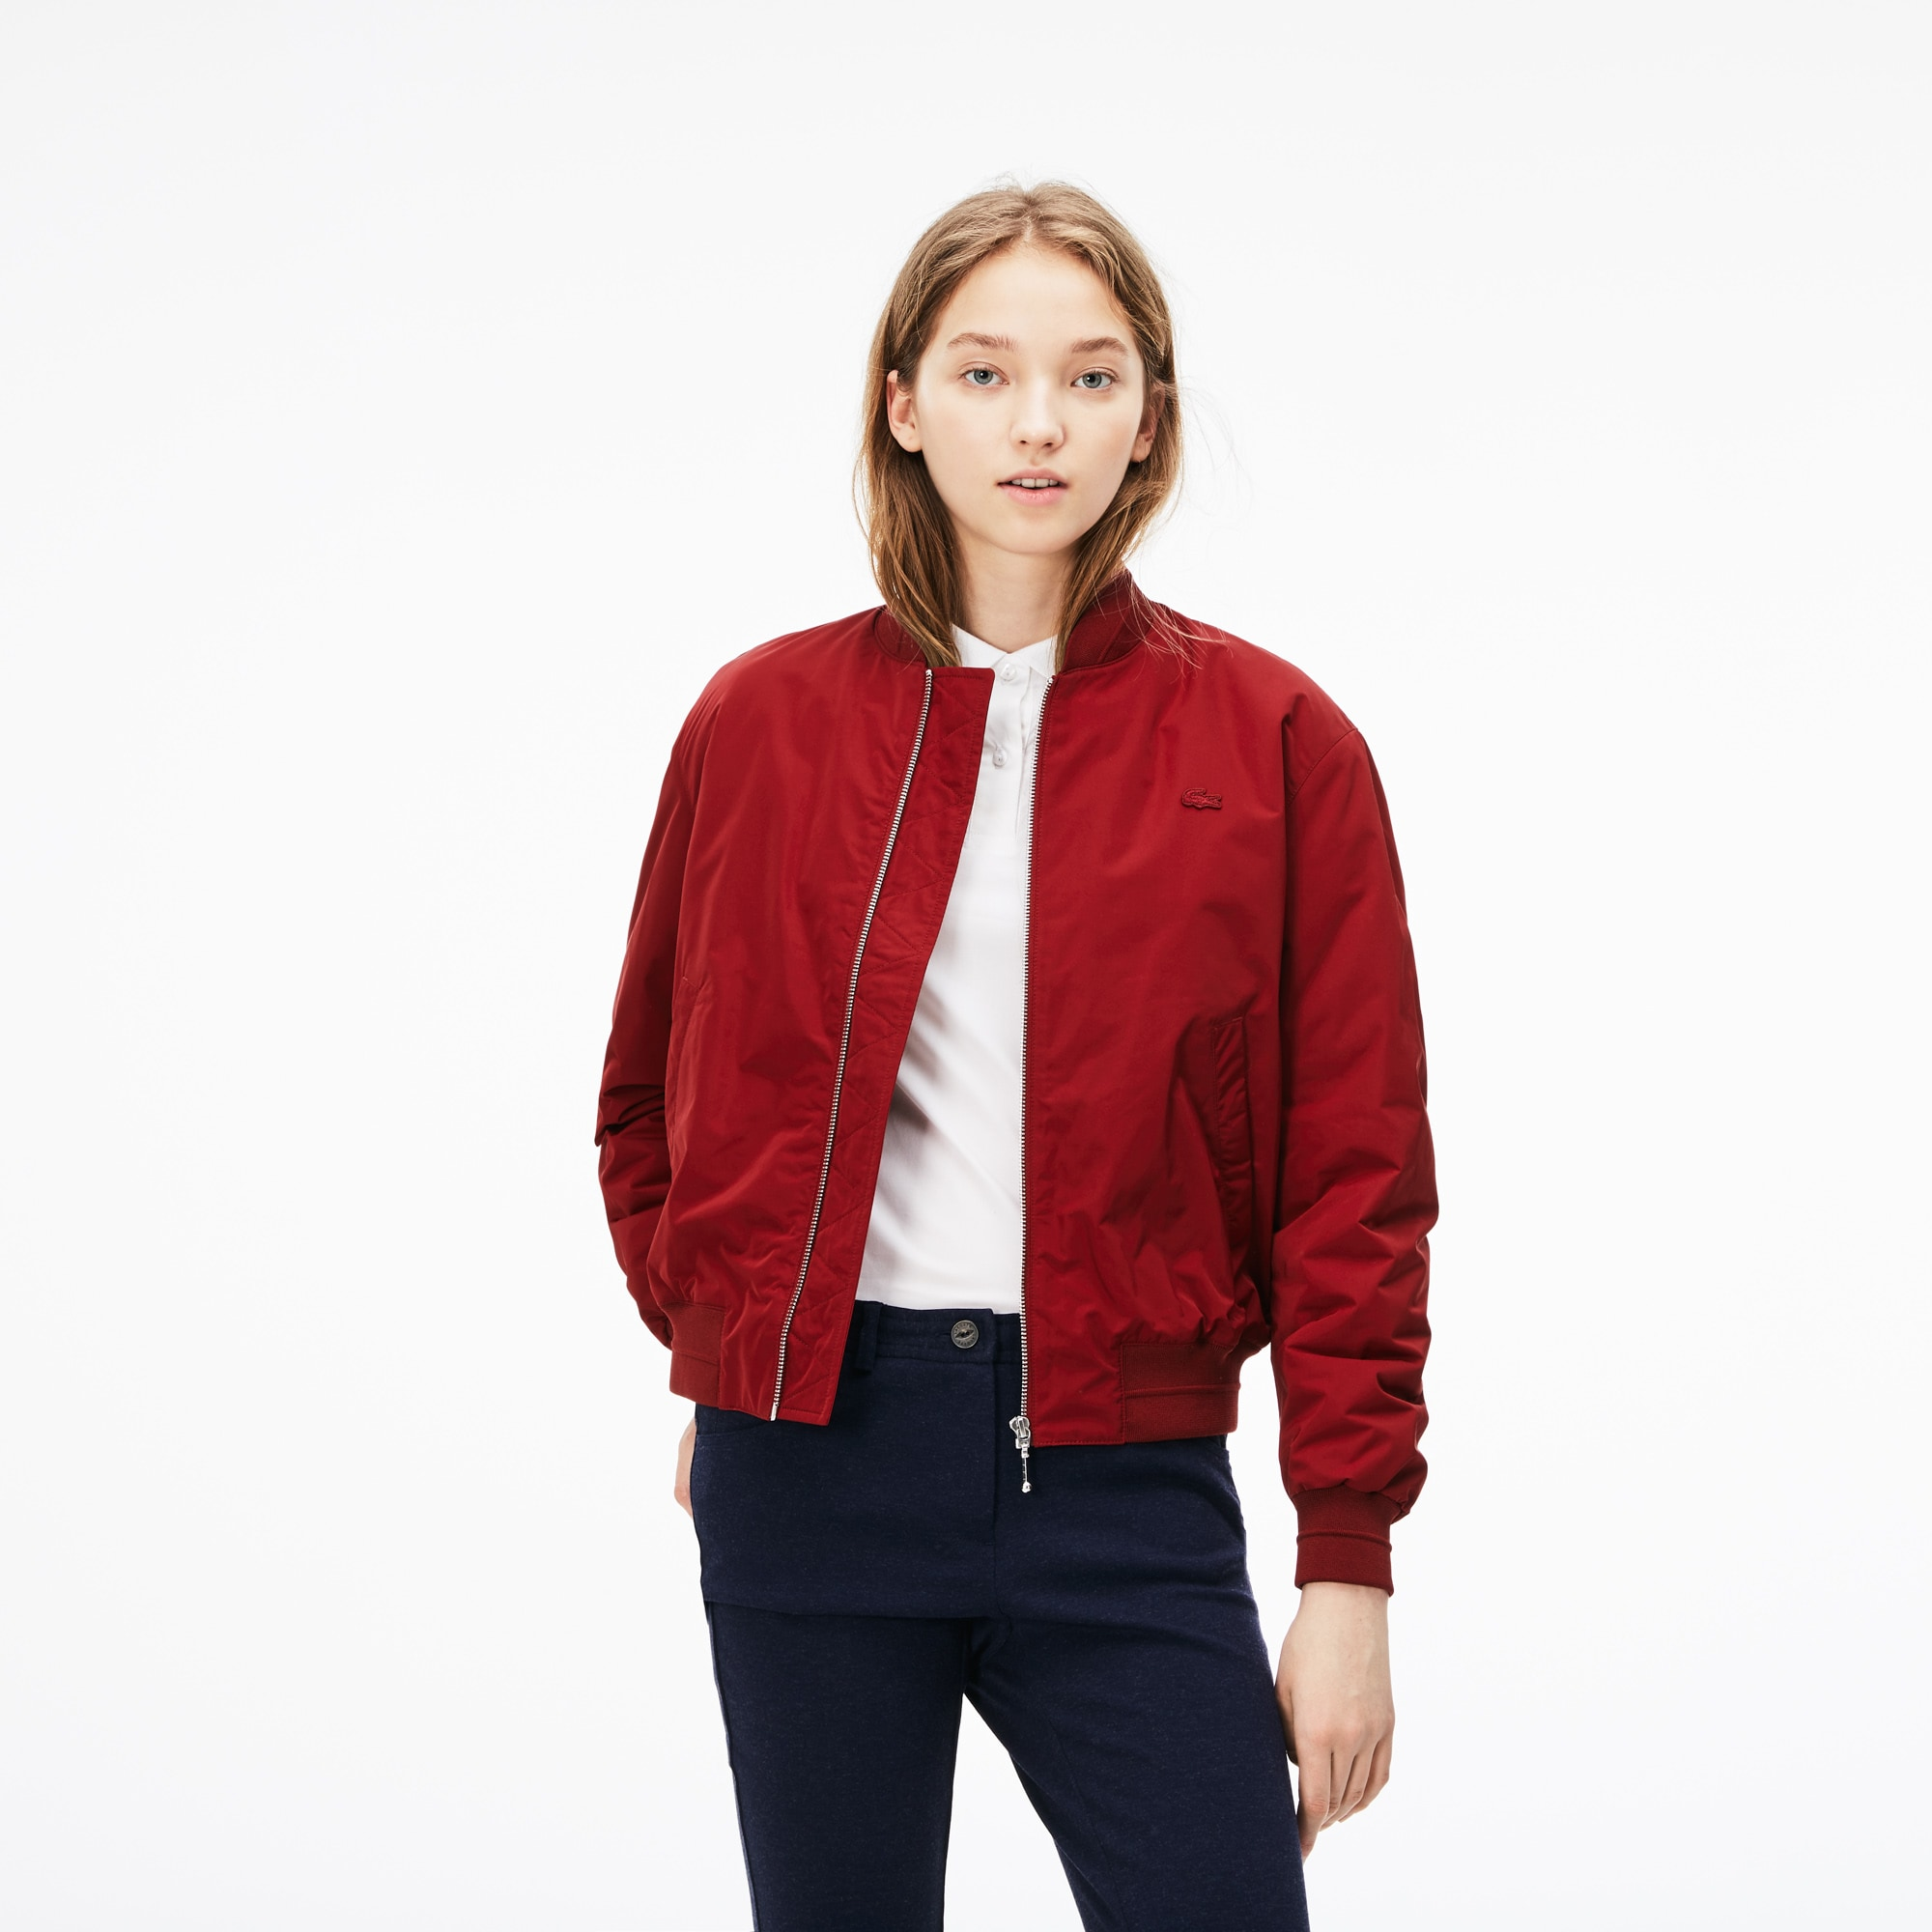 24115a26c6 Women's Contrast Bands Quilted Water-Resistant Taffeta Bomber ...